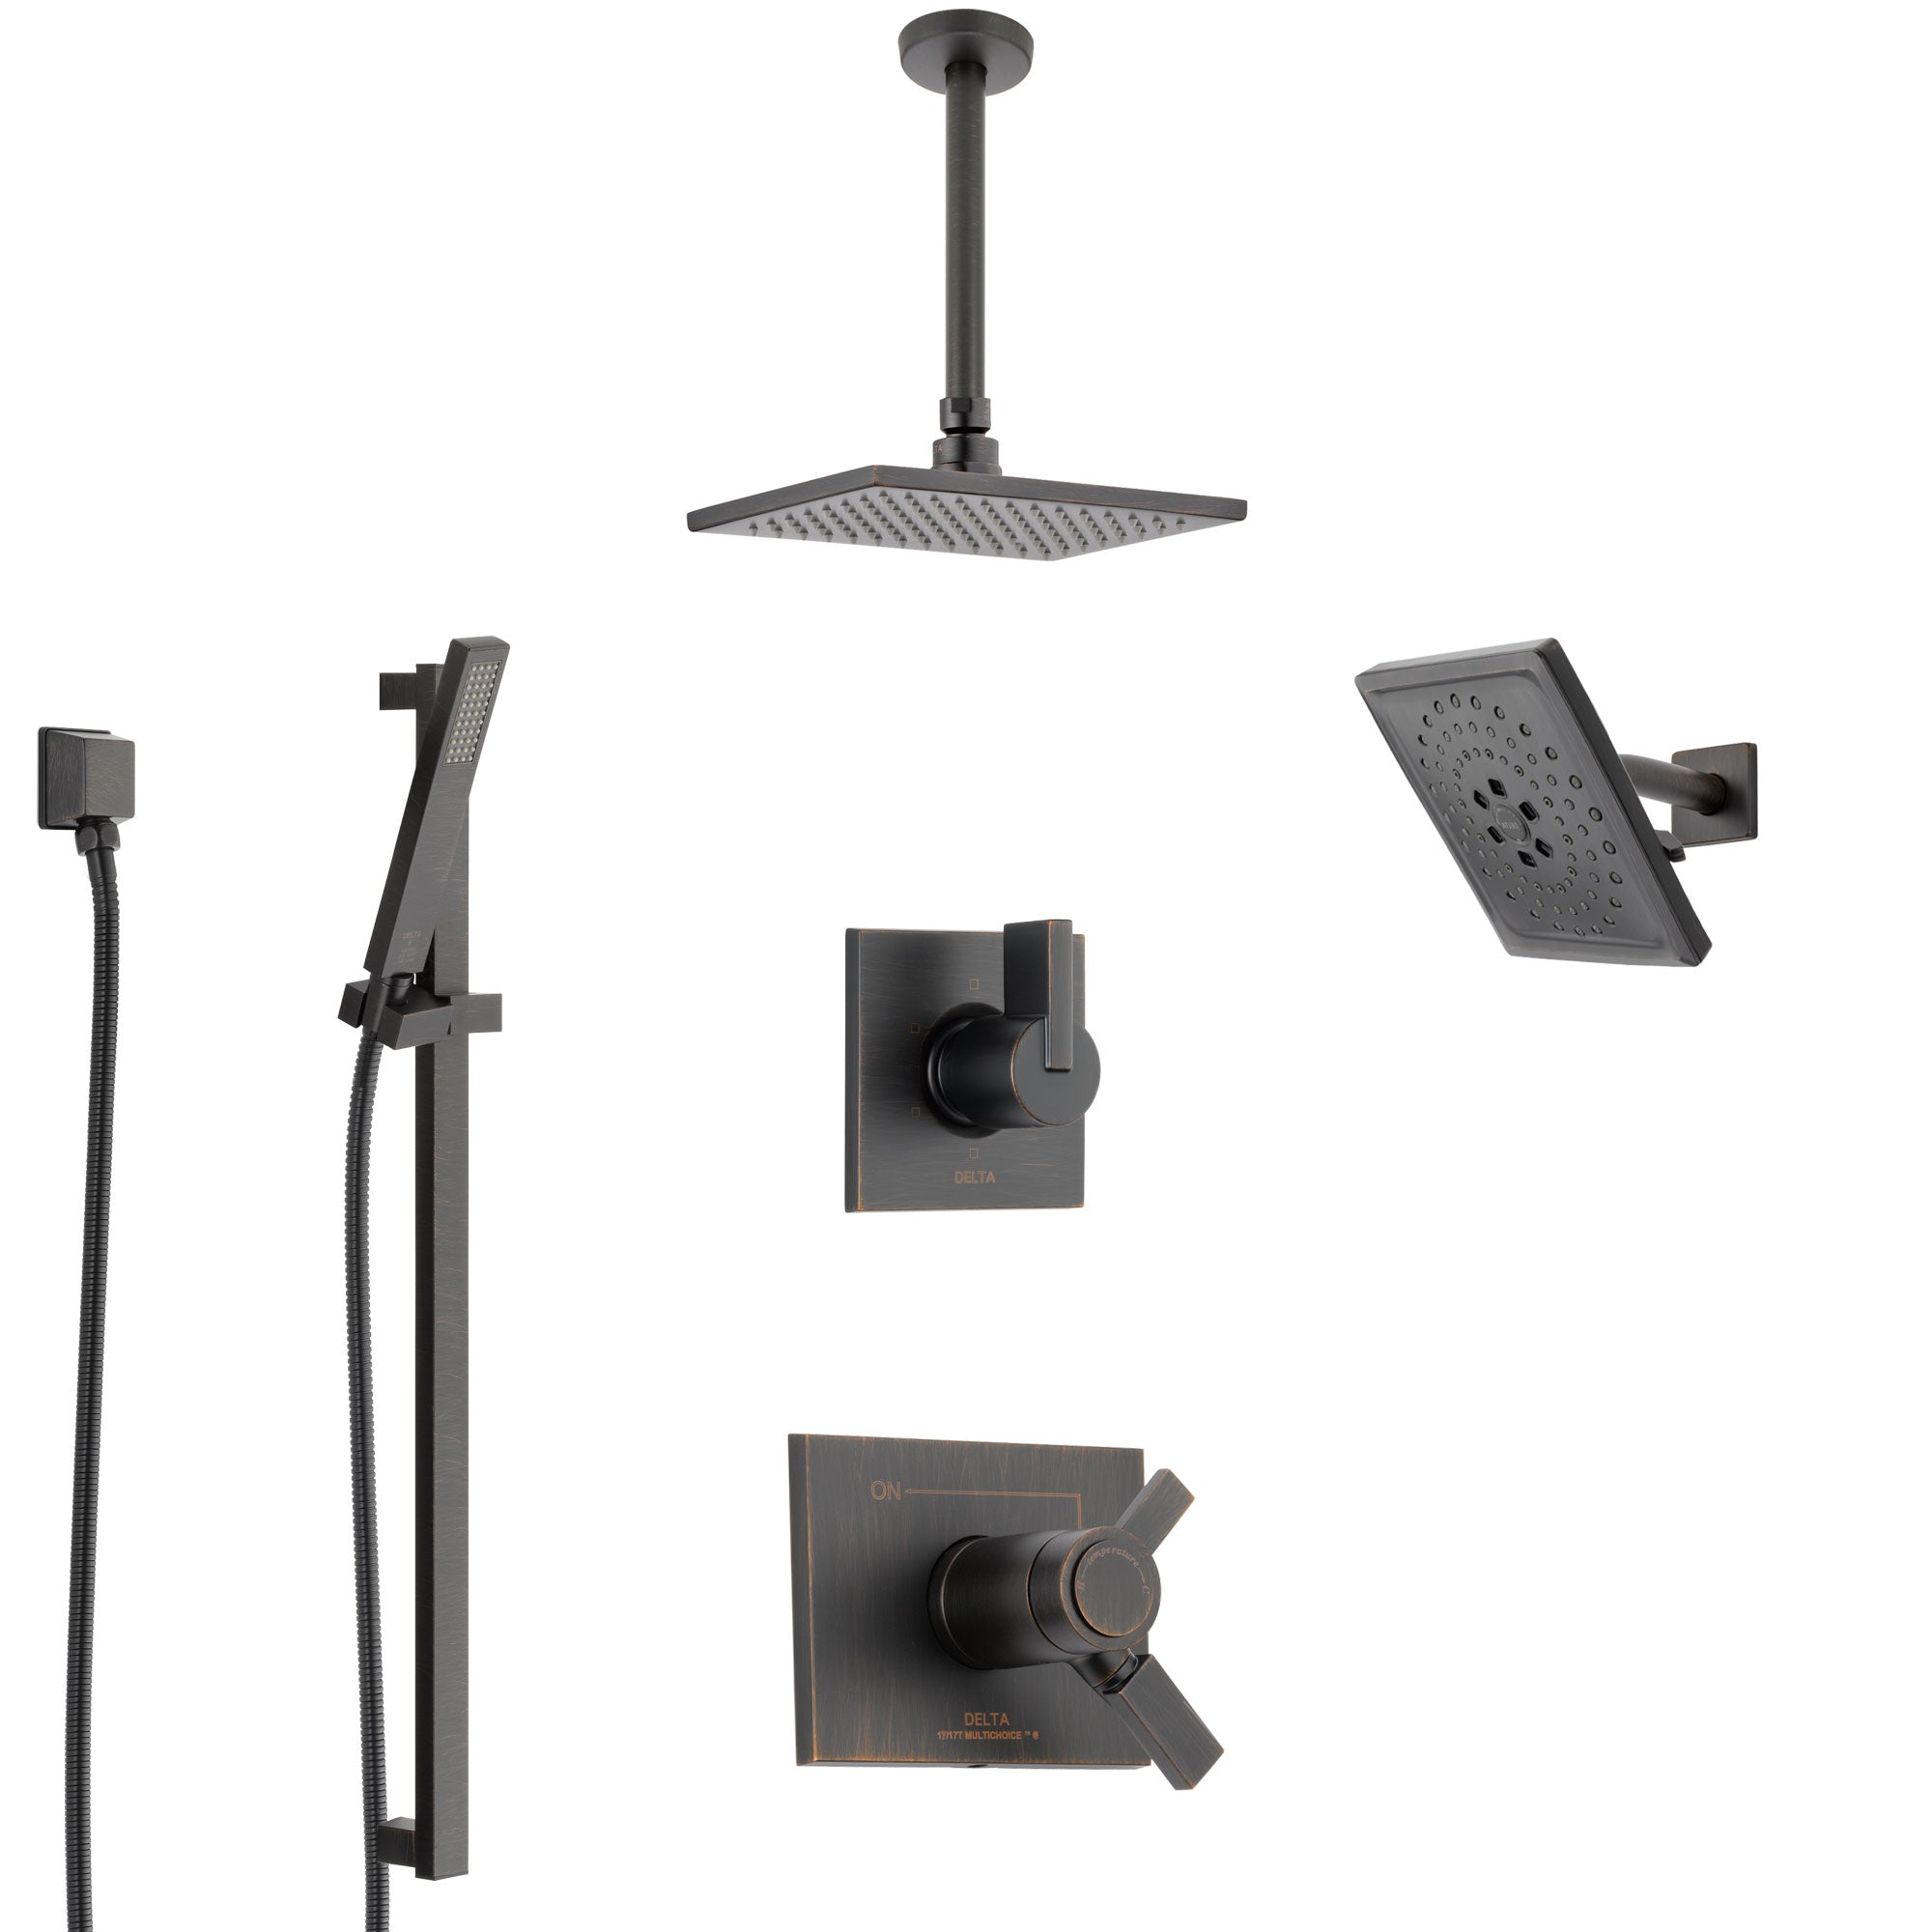 Delta Vero Venetian Bronze Shower System with Dual Thermostatic Control, Diverter, Showerhead, Ceiling Mount Showerhead, and Hand Shower SS17T532RB8